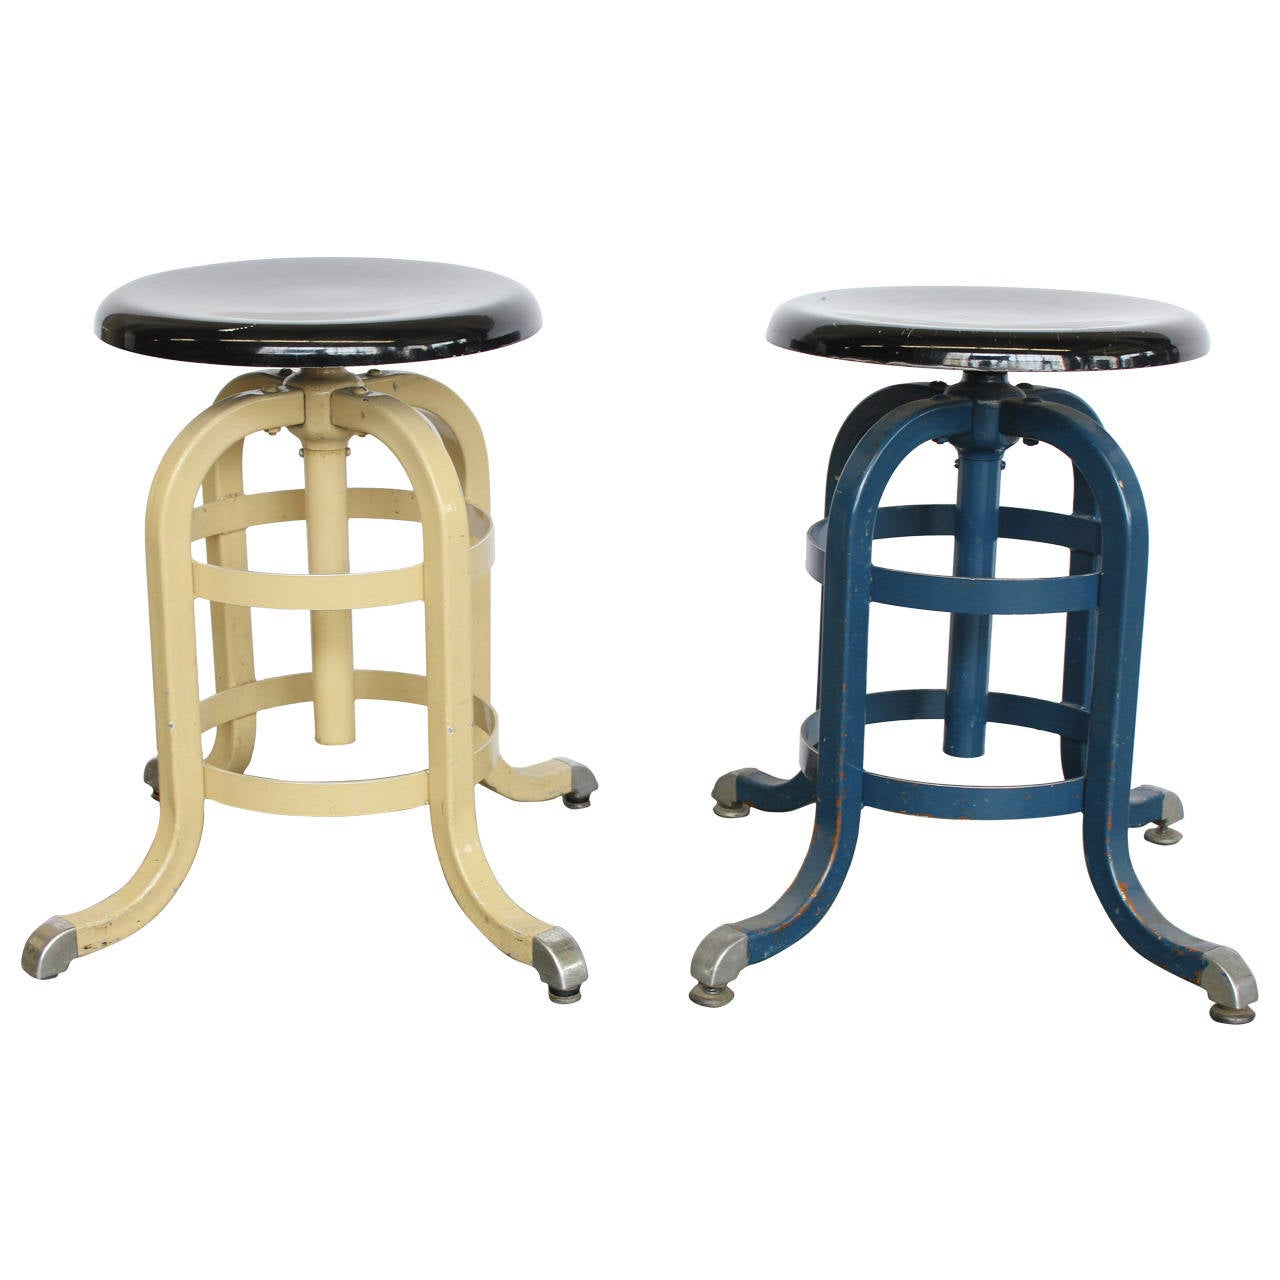 united chair medical stool folding caddy 1930s american adjustable for sale at 1stdibs